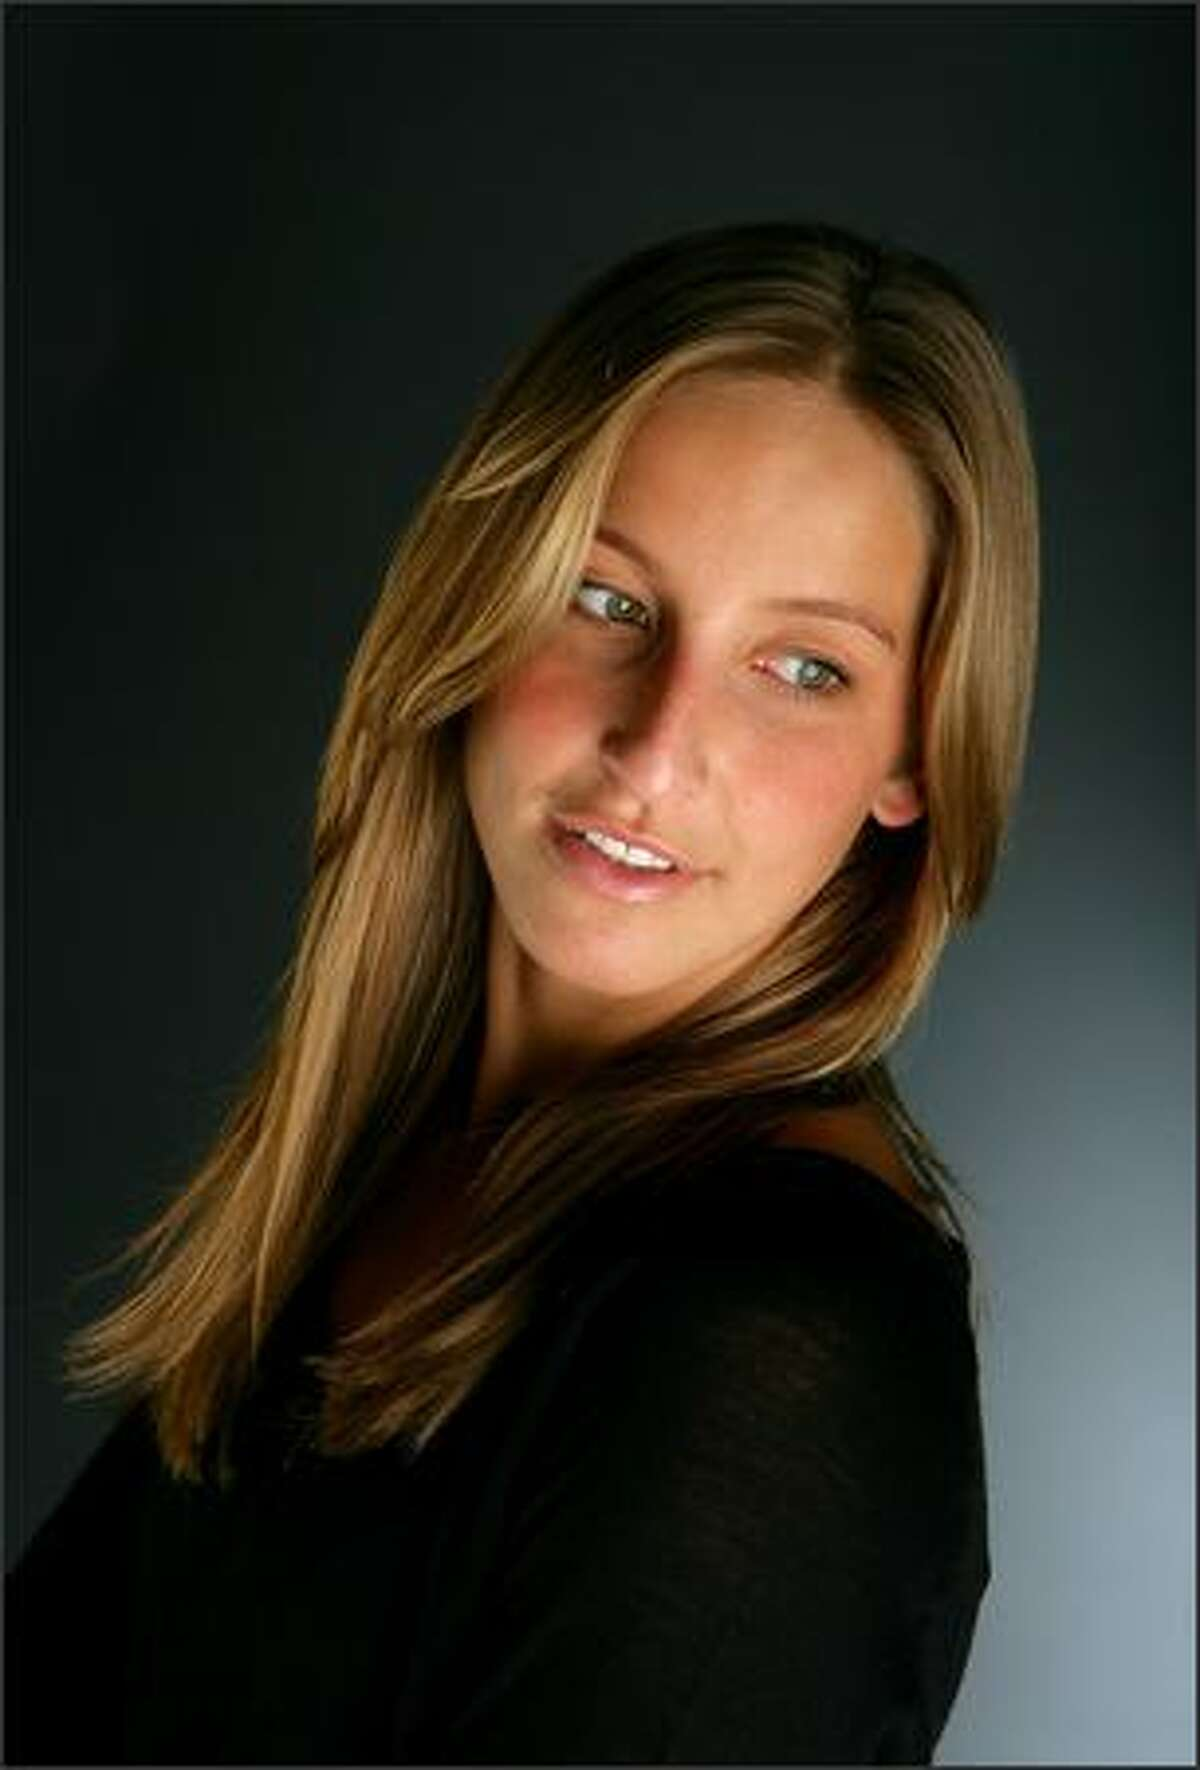 Swimmer Kim Vandenberg poses for a portrait prior to the USA Swimming Foundation's Golden Goggle Awards in Los Angeles.